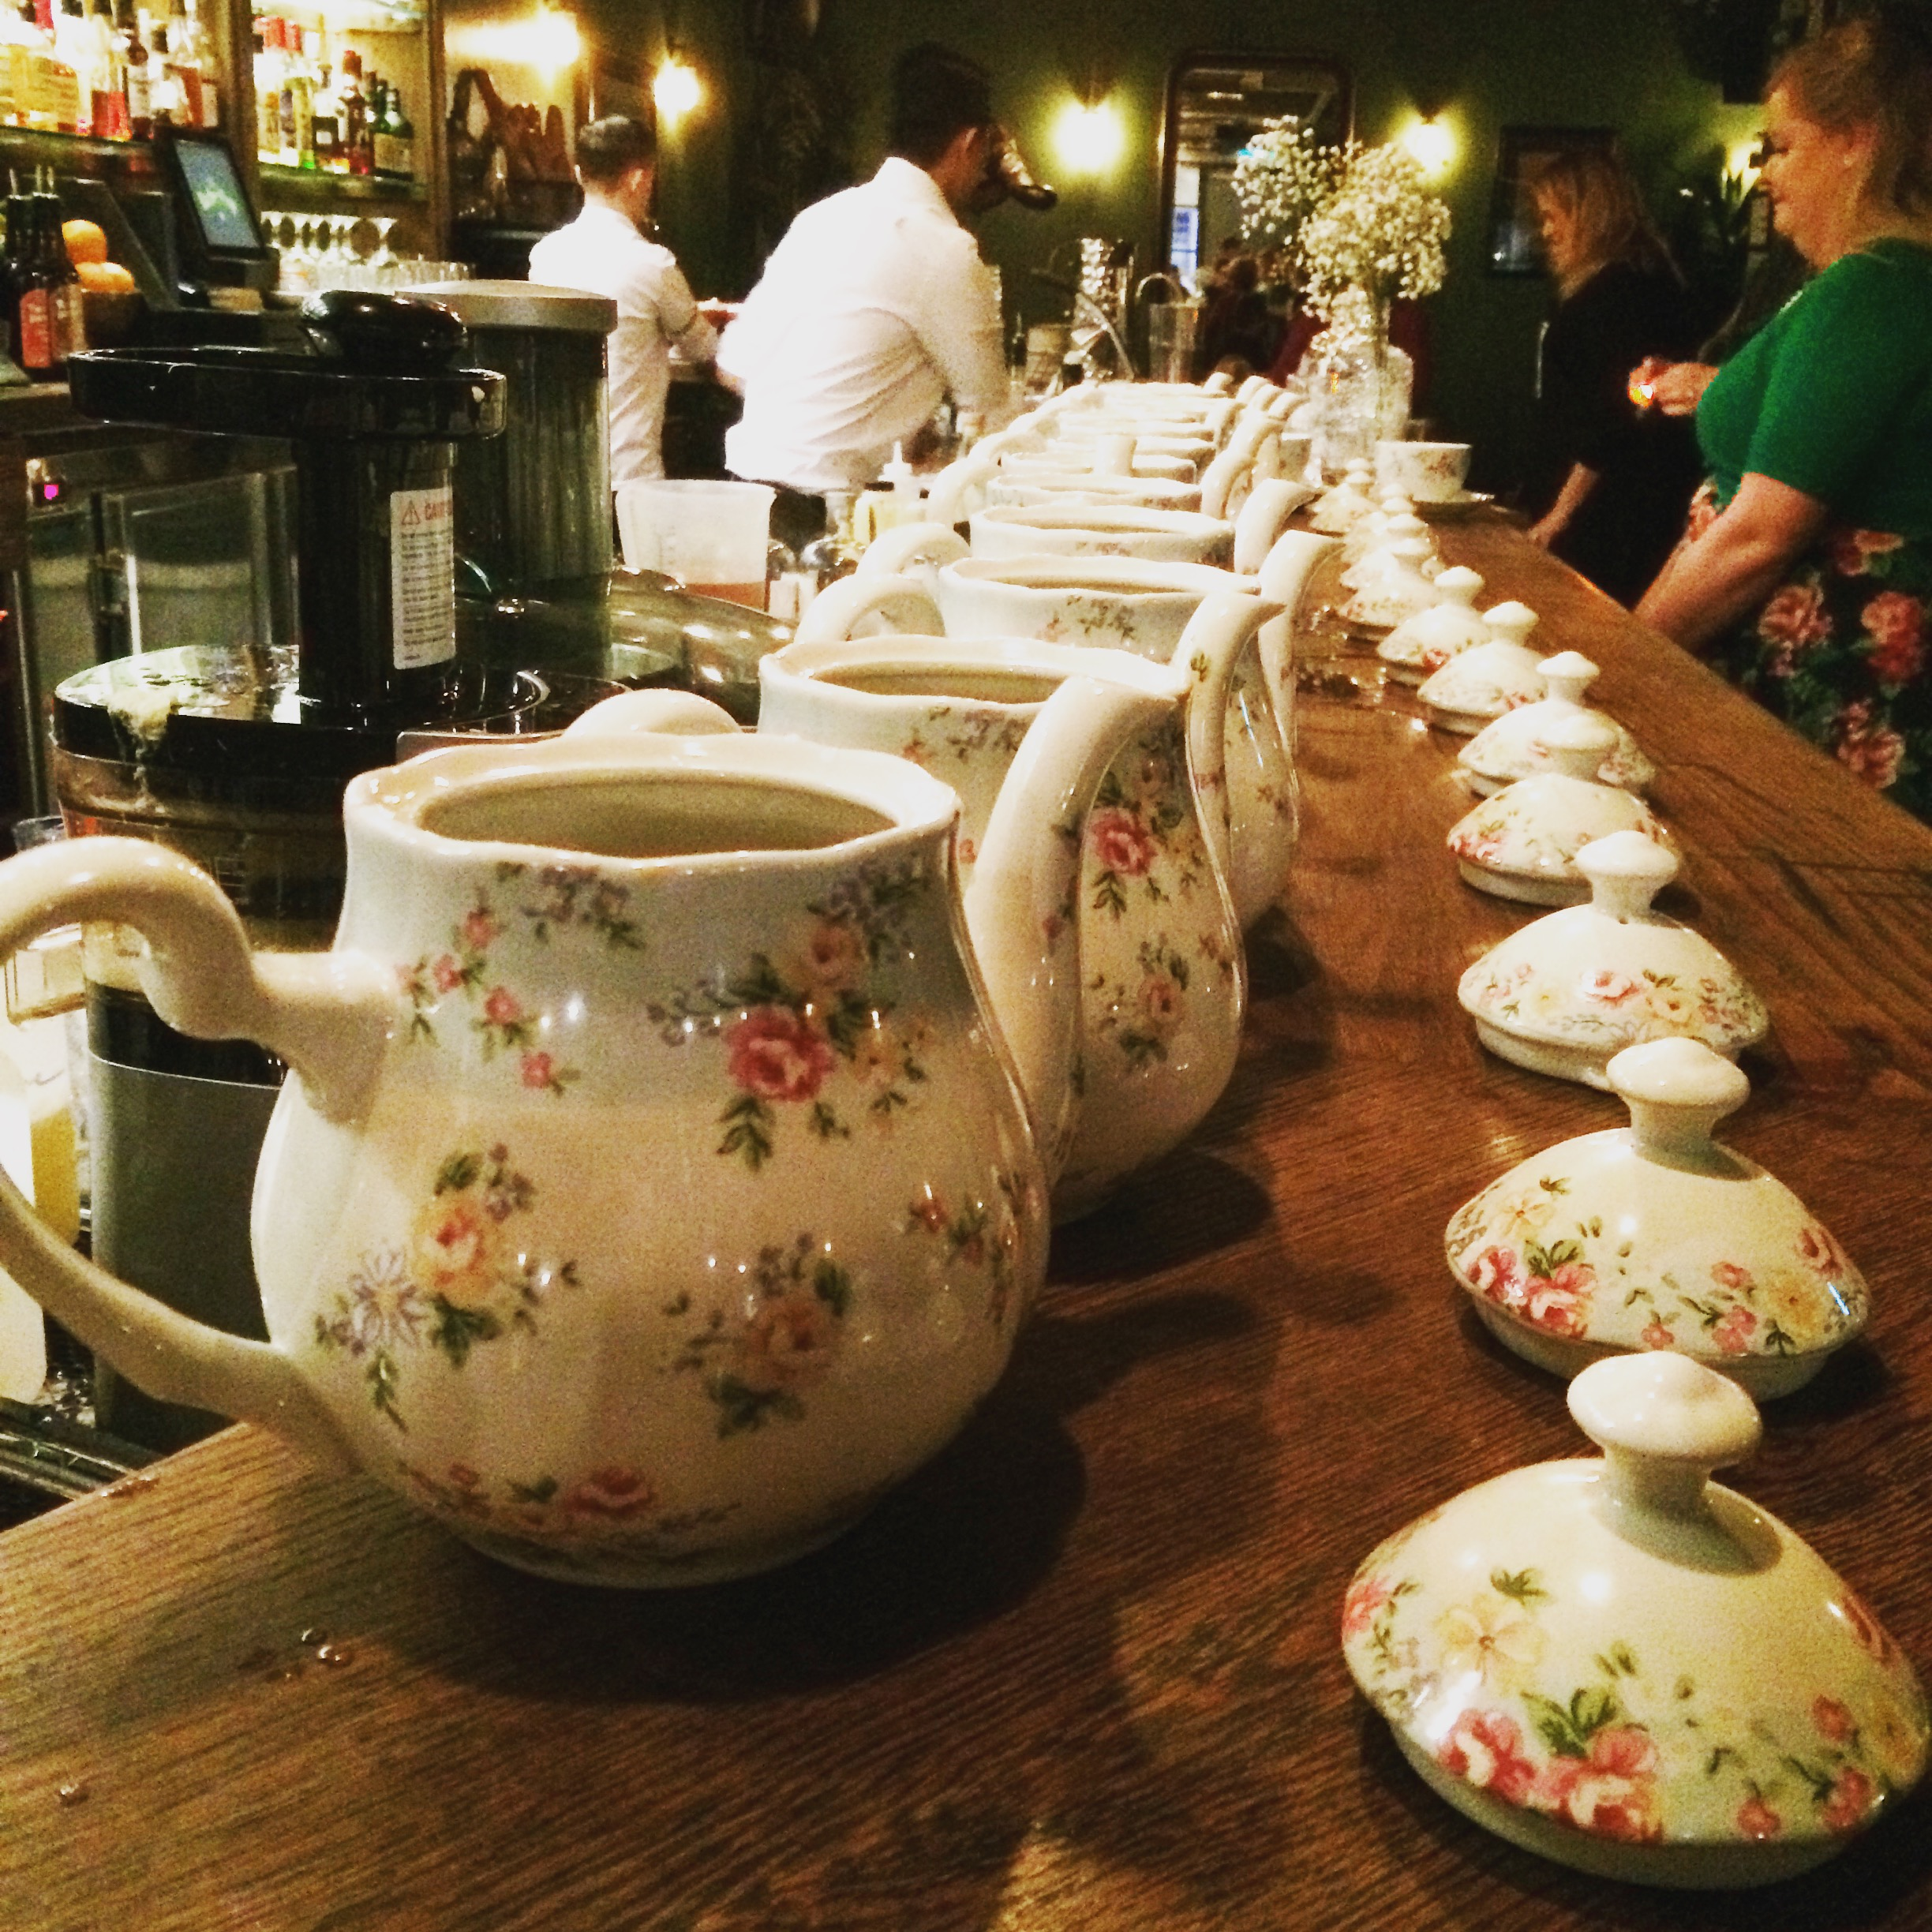 Tipsy teapots all in a row - teapot cocktail with Loch gin, peppermint, green tea and pineapple, which all combined to produce a cocktail tasting like boozed up chamomile tea